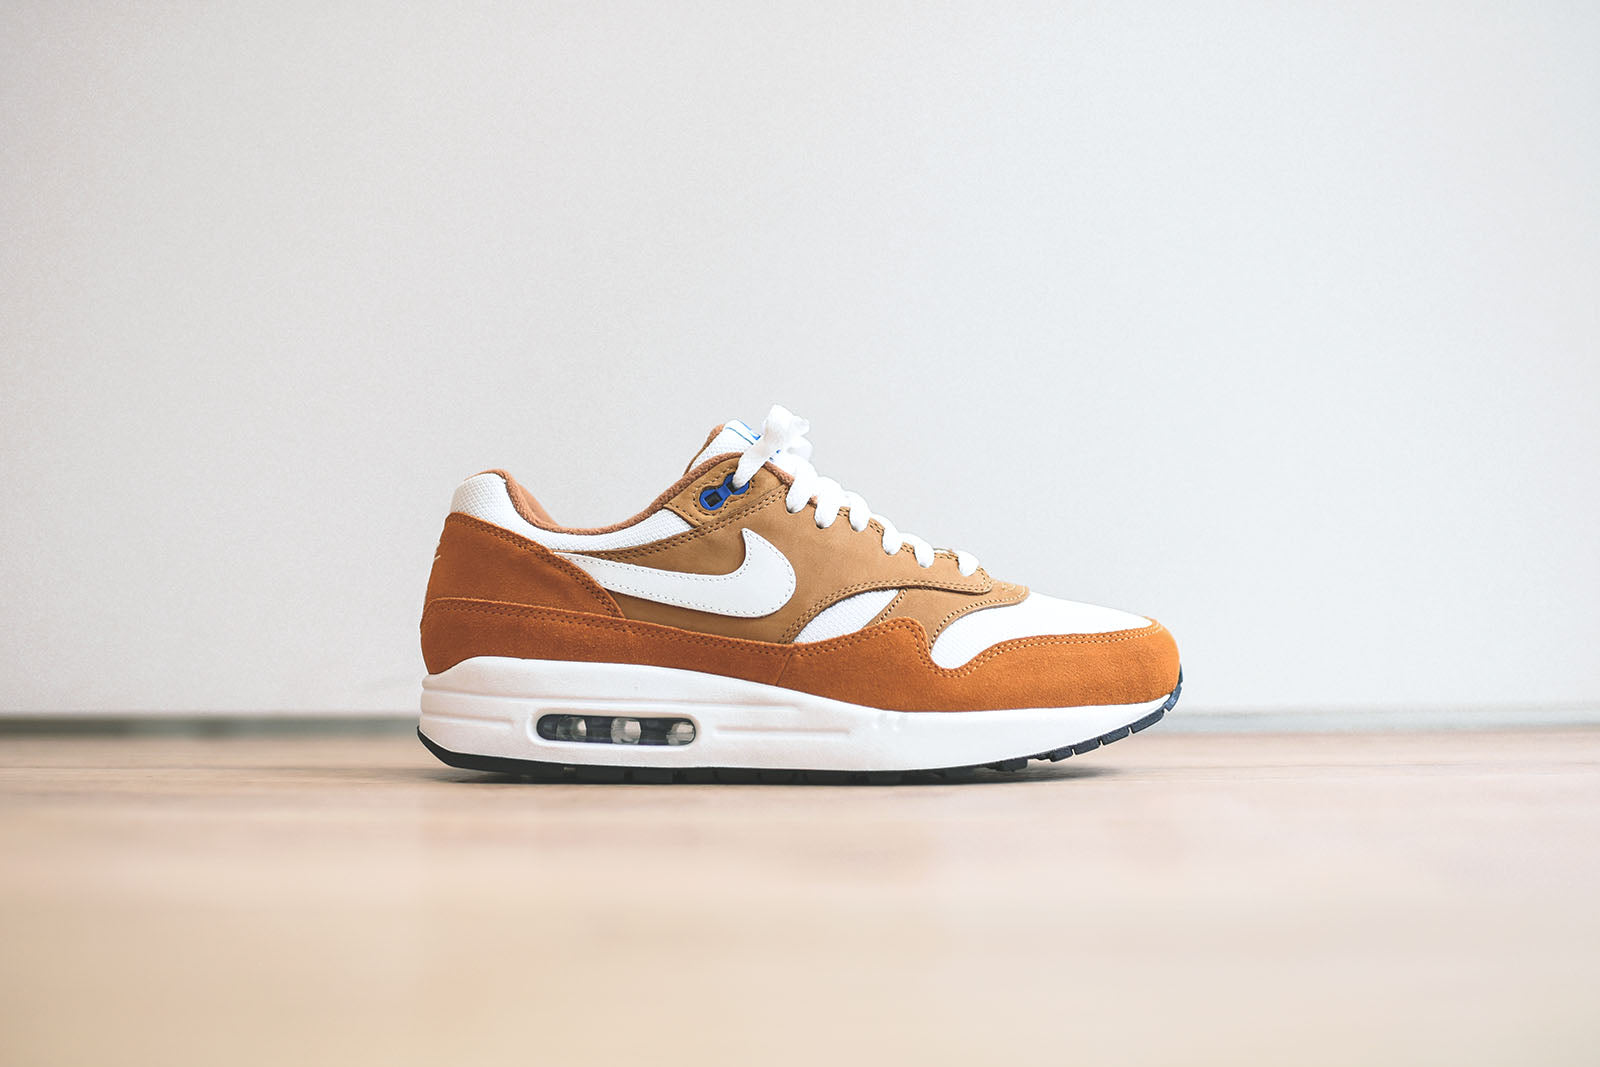 best sneakers 29958 0887a Nike Air Max 1 PRM Retro - Dark Curry  True White. May 10, 2018. -3. -1